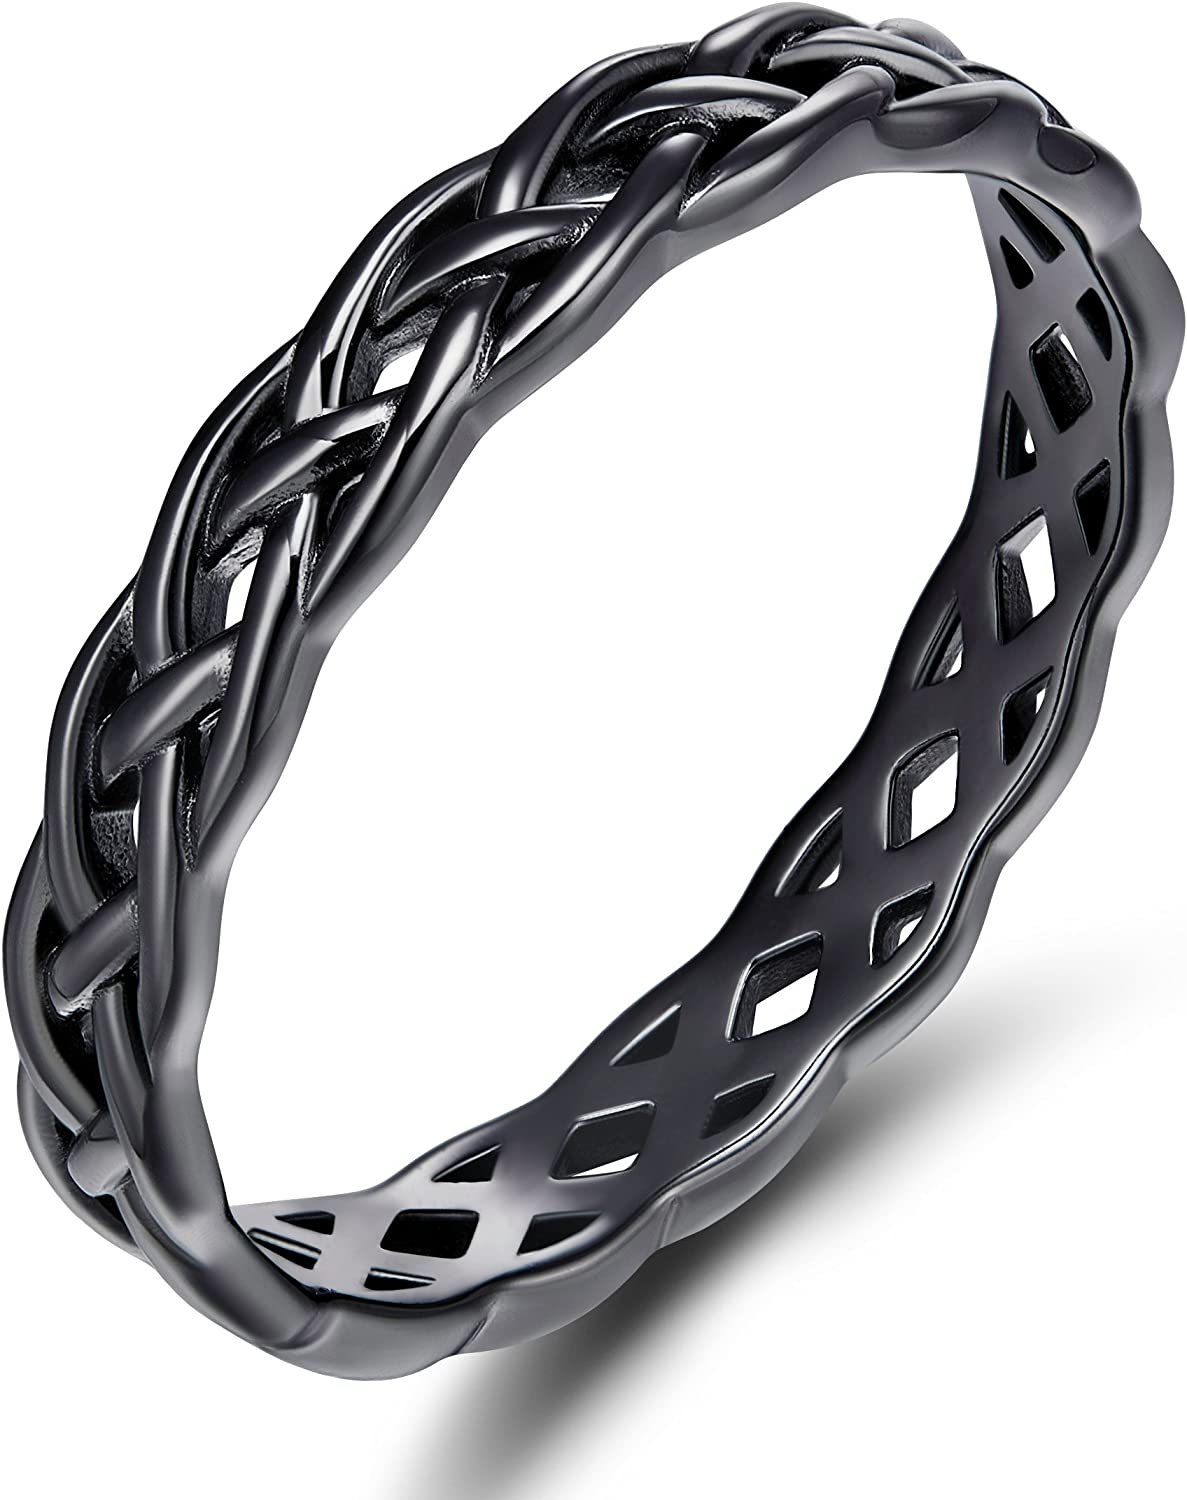 SOMEN TUNGSTEN 925 Sterling Silver Celtic Knot Eternity Band Ring Engagement Wedding Band 4mm Size 4-11